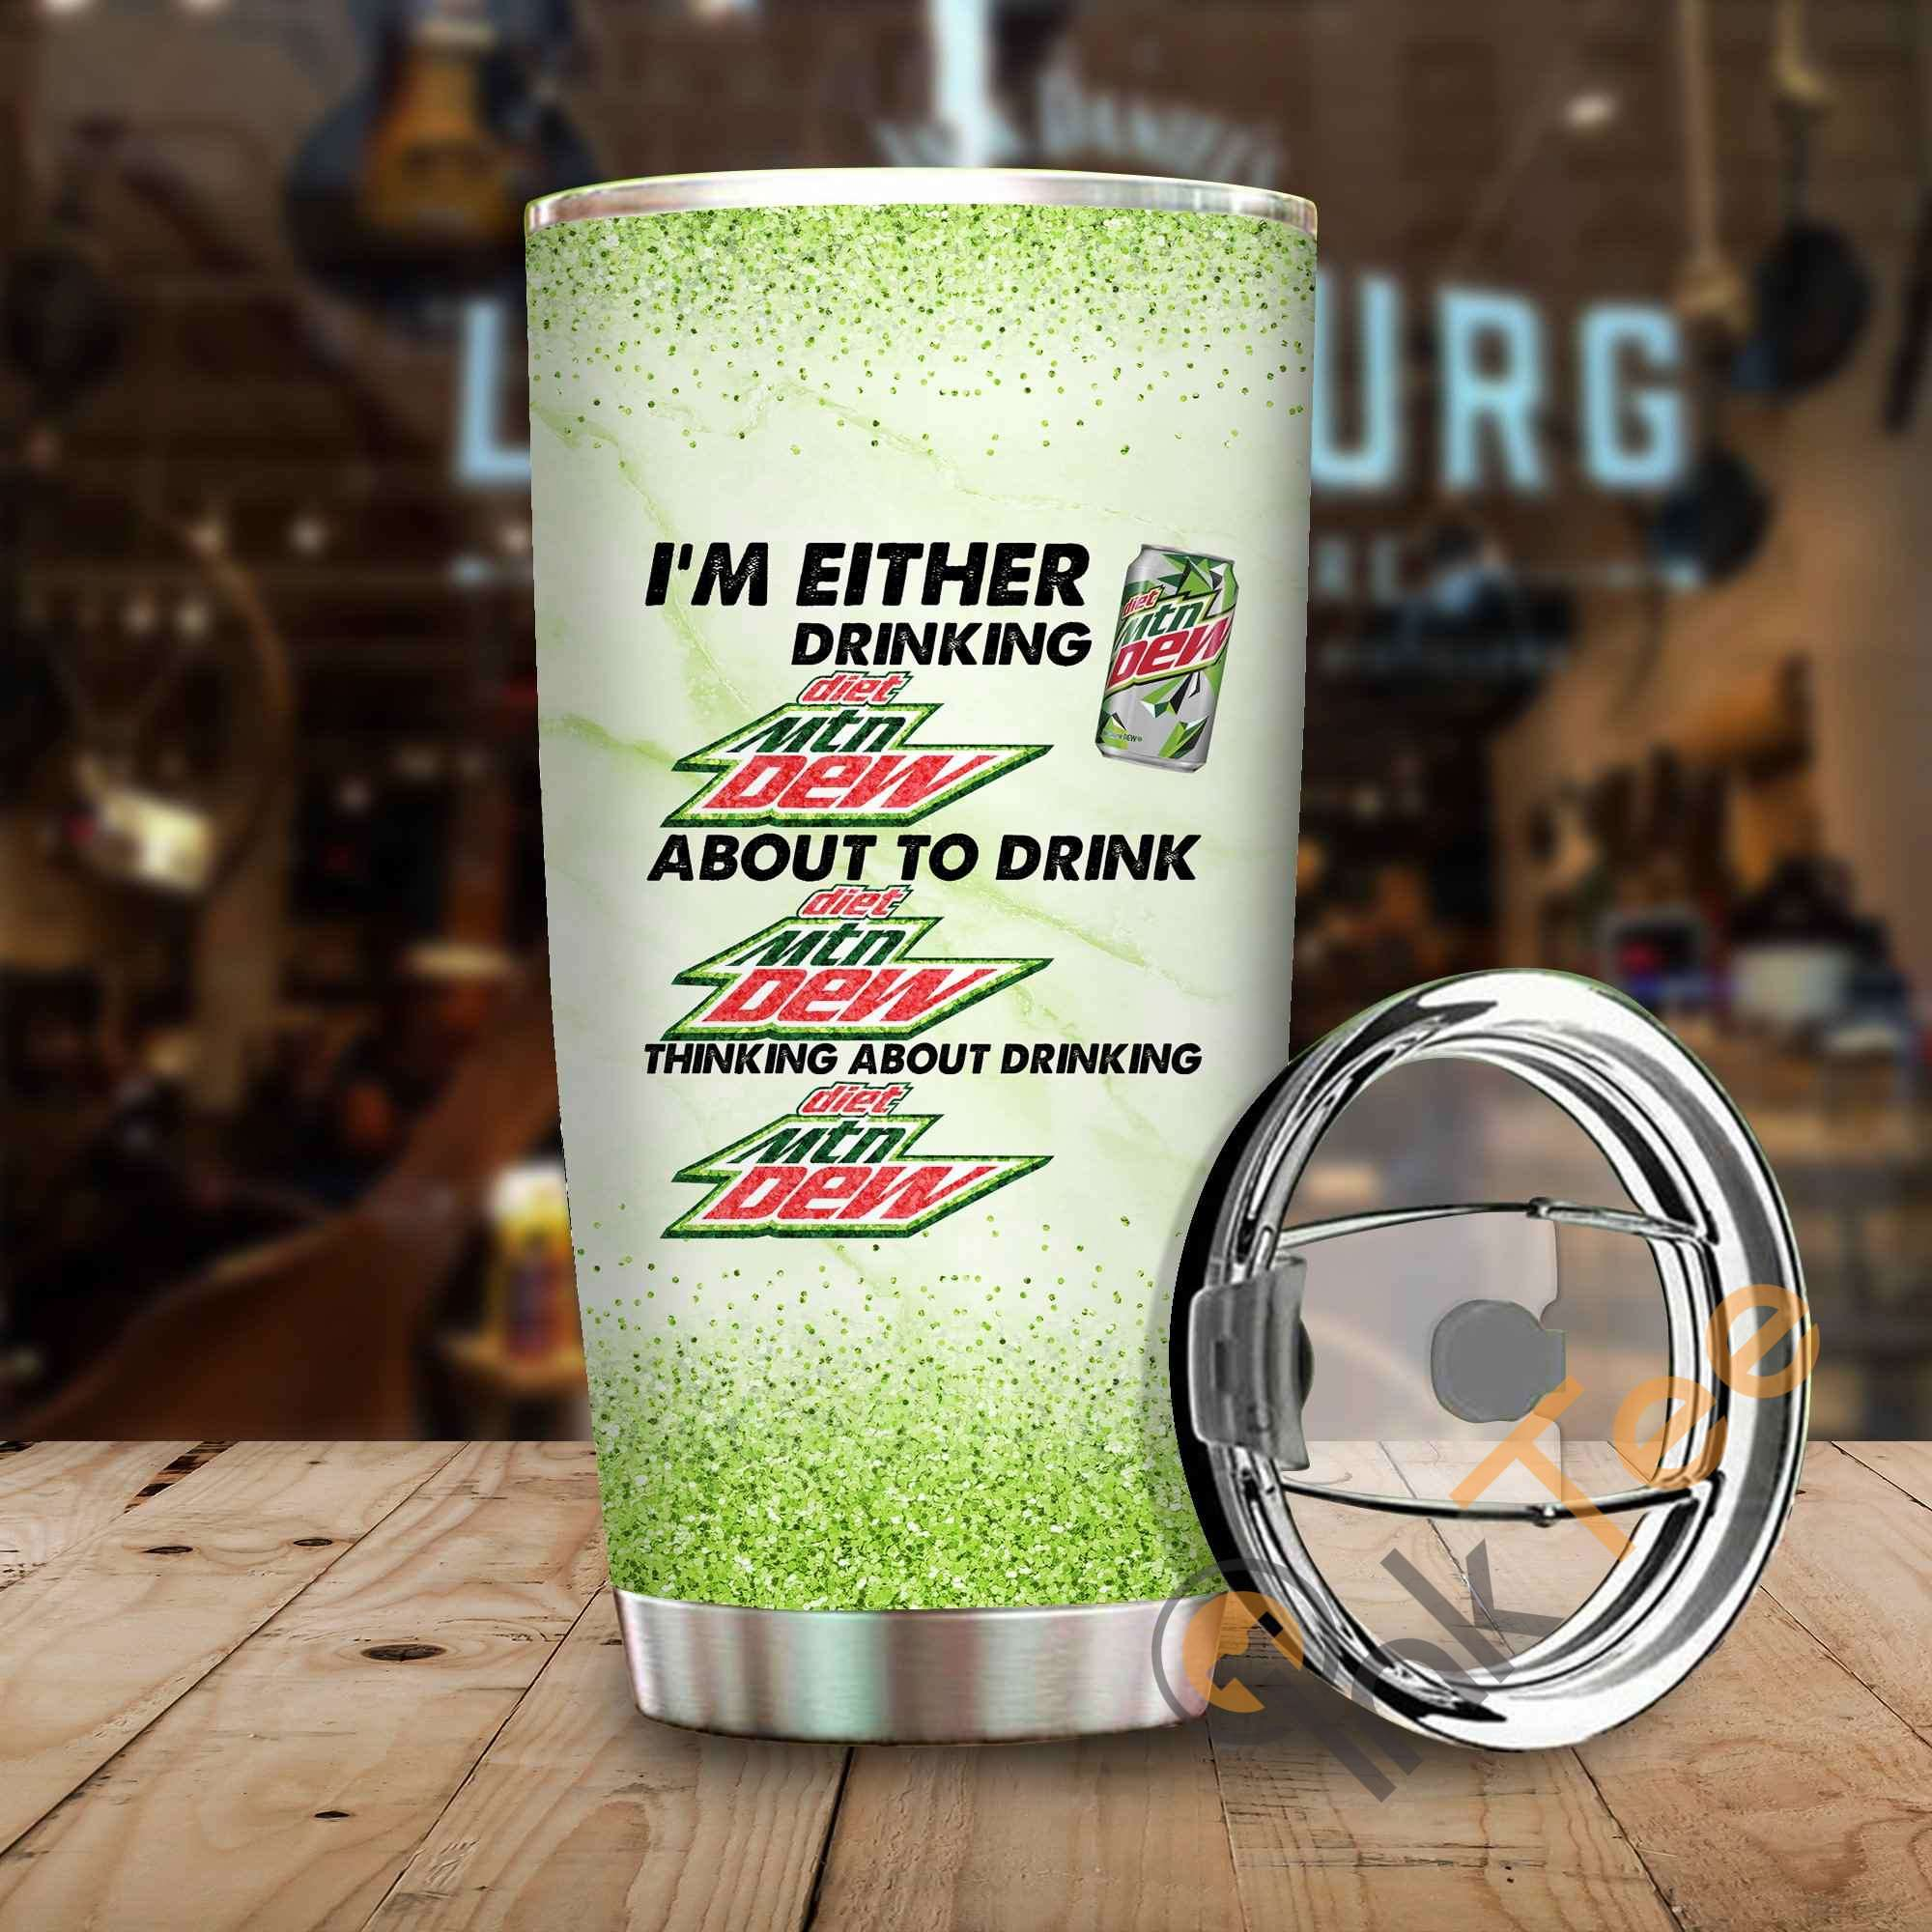 Im Either Drinking Moutain Dew Amazon Best Seller Sku 3935 Stainless Steel Tumbler